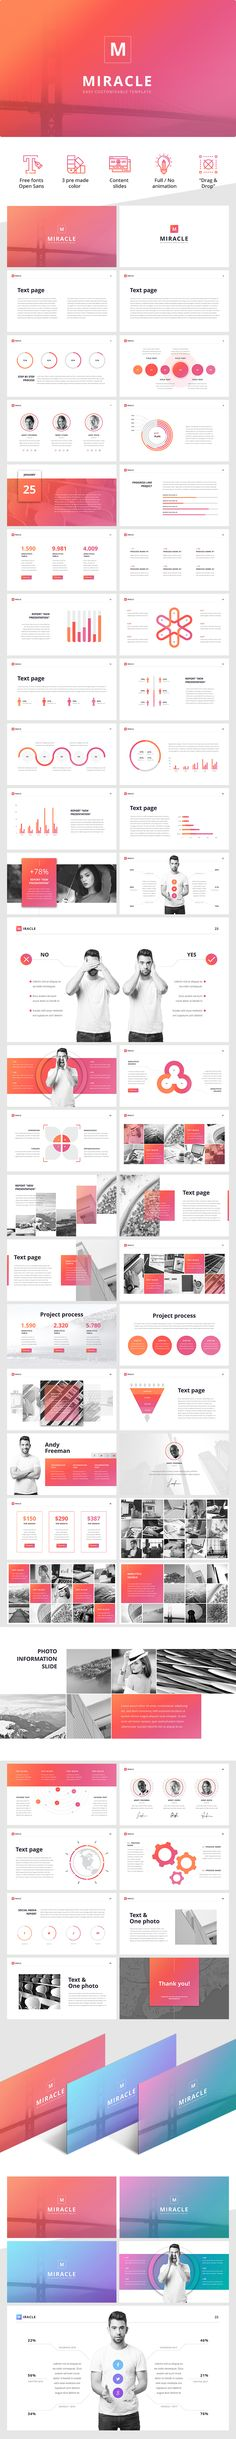 NEW PowerPoint Template Download link: https://hislide.io/product/miracle-powerpoint-template/ #ppt #pptx #powerpoint #slide #slides #template #chart #infographic #design #presentation #miracle #marketing